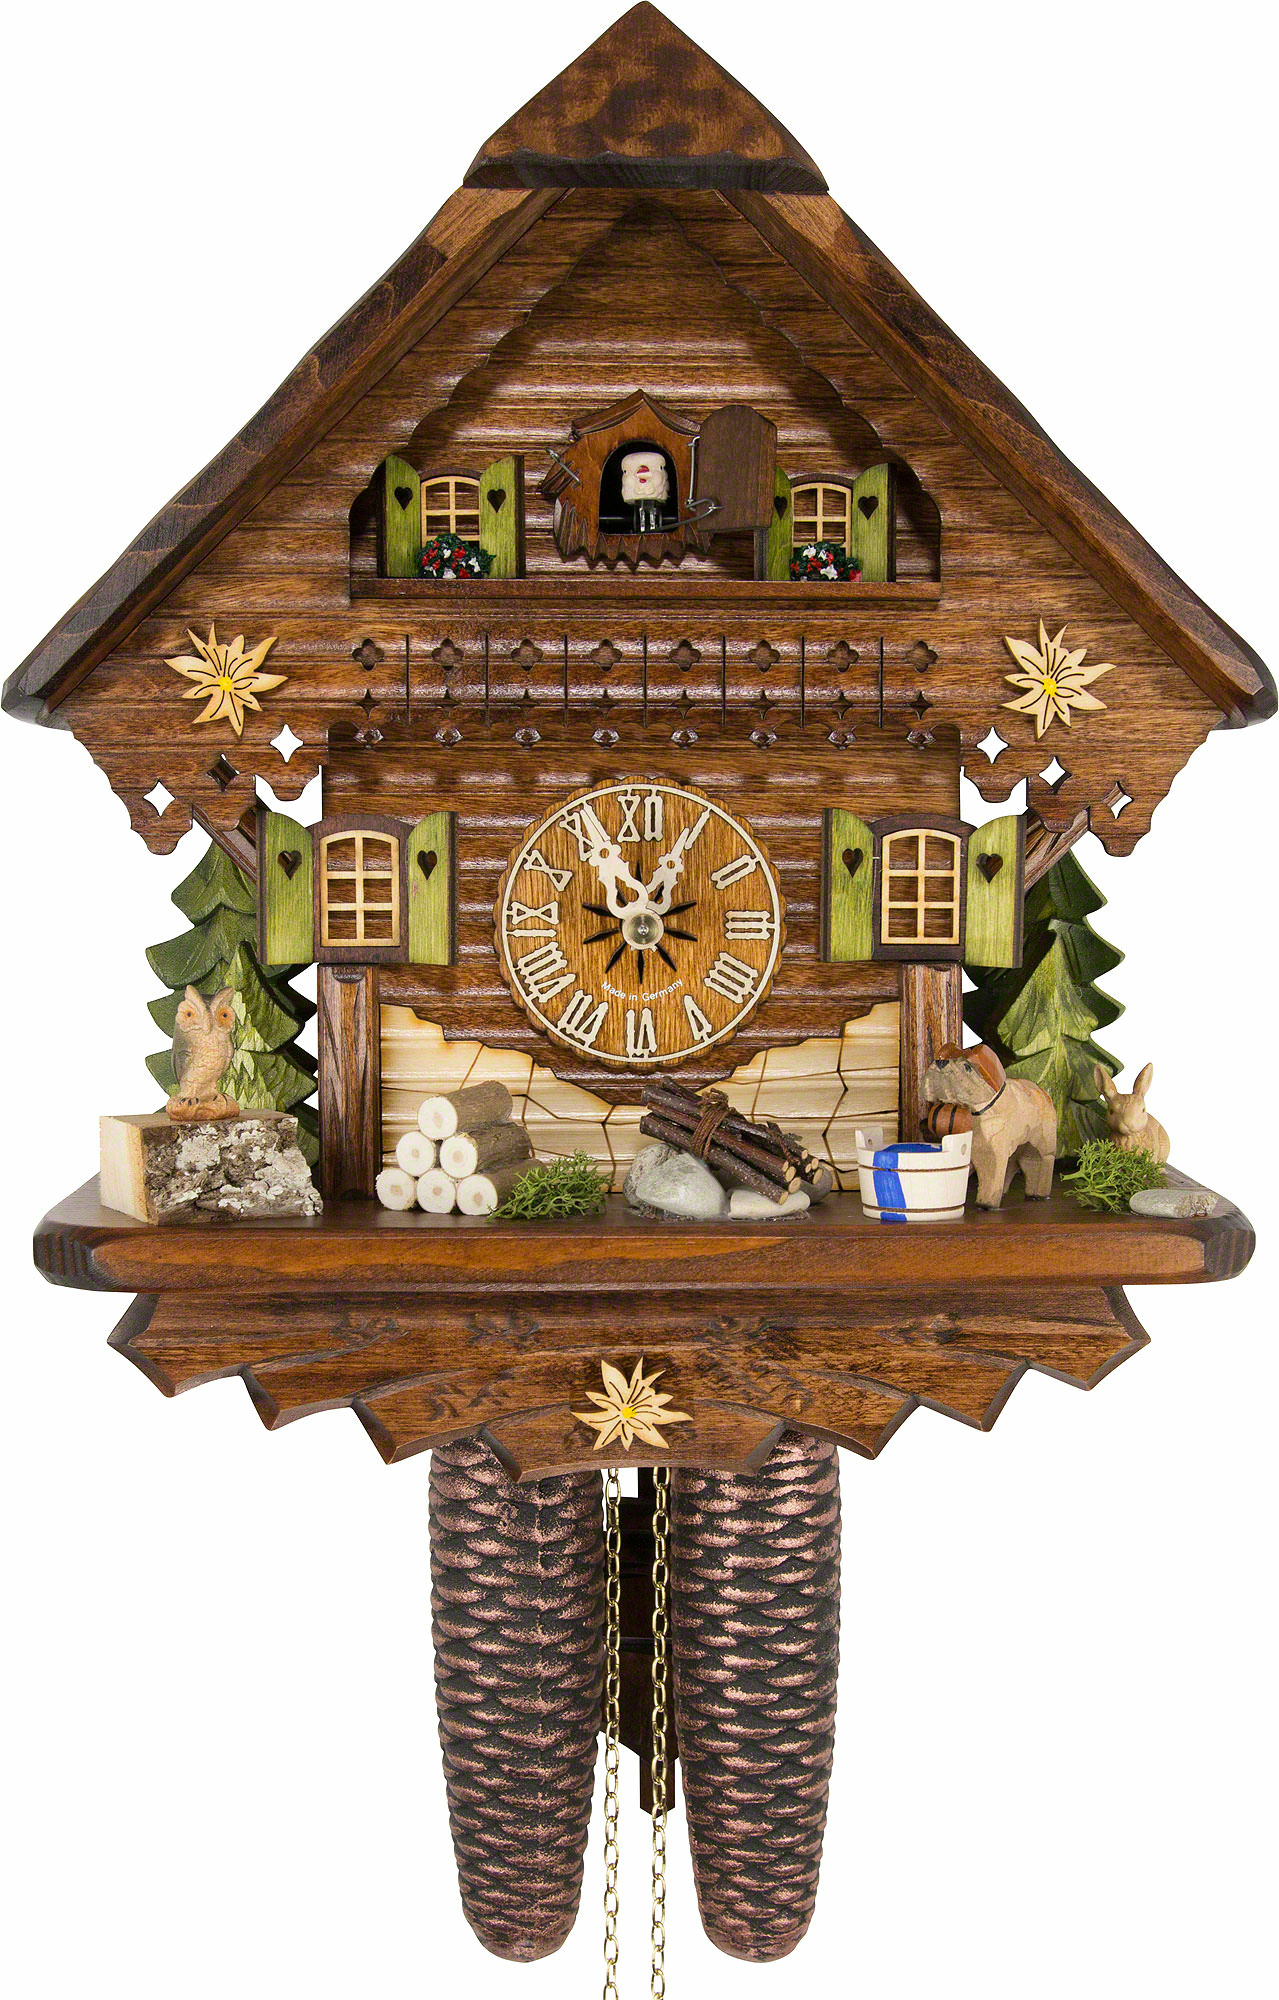 cuckoo clock instructions with Cuckoo Clock 8 Day Movement Chalet Style 34cm By Cuckoo Palace  1033 on 1526 furthermore Black White Alarm Clock likewise Stock Photo Triberg Im Schwarzwald Watch Shop On The Main Road With The Worlds 126191117 furthermore Cuckoo Clock 8 Day Movement Chalet Style 34cm By Cuckoo Palace  1033 further Cuckoo Clock Quartz Movement Chalet Style 24cm By Trenkle Uhren  896.